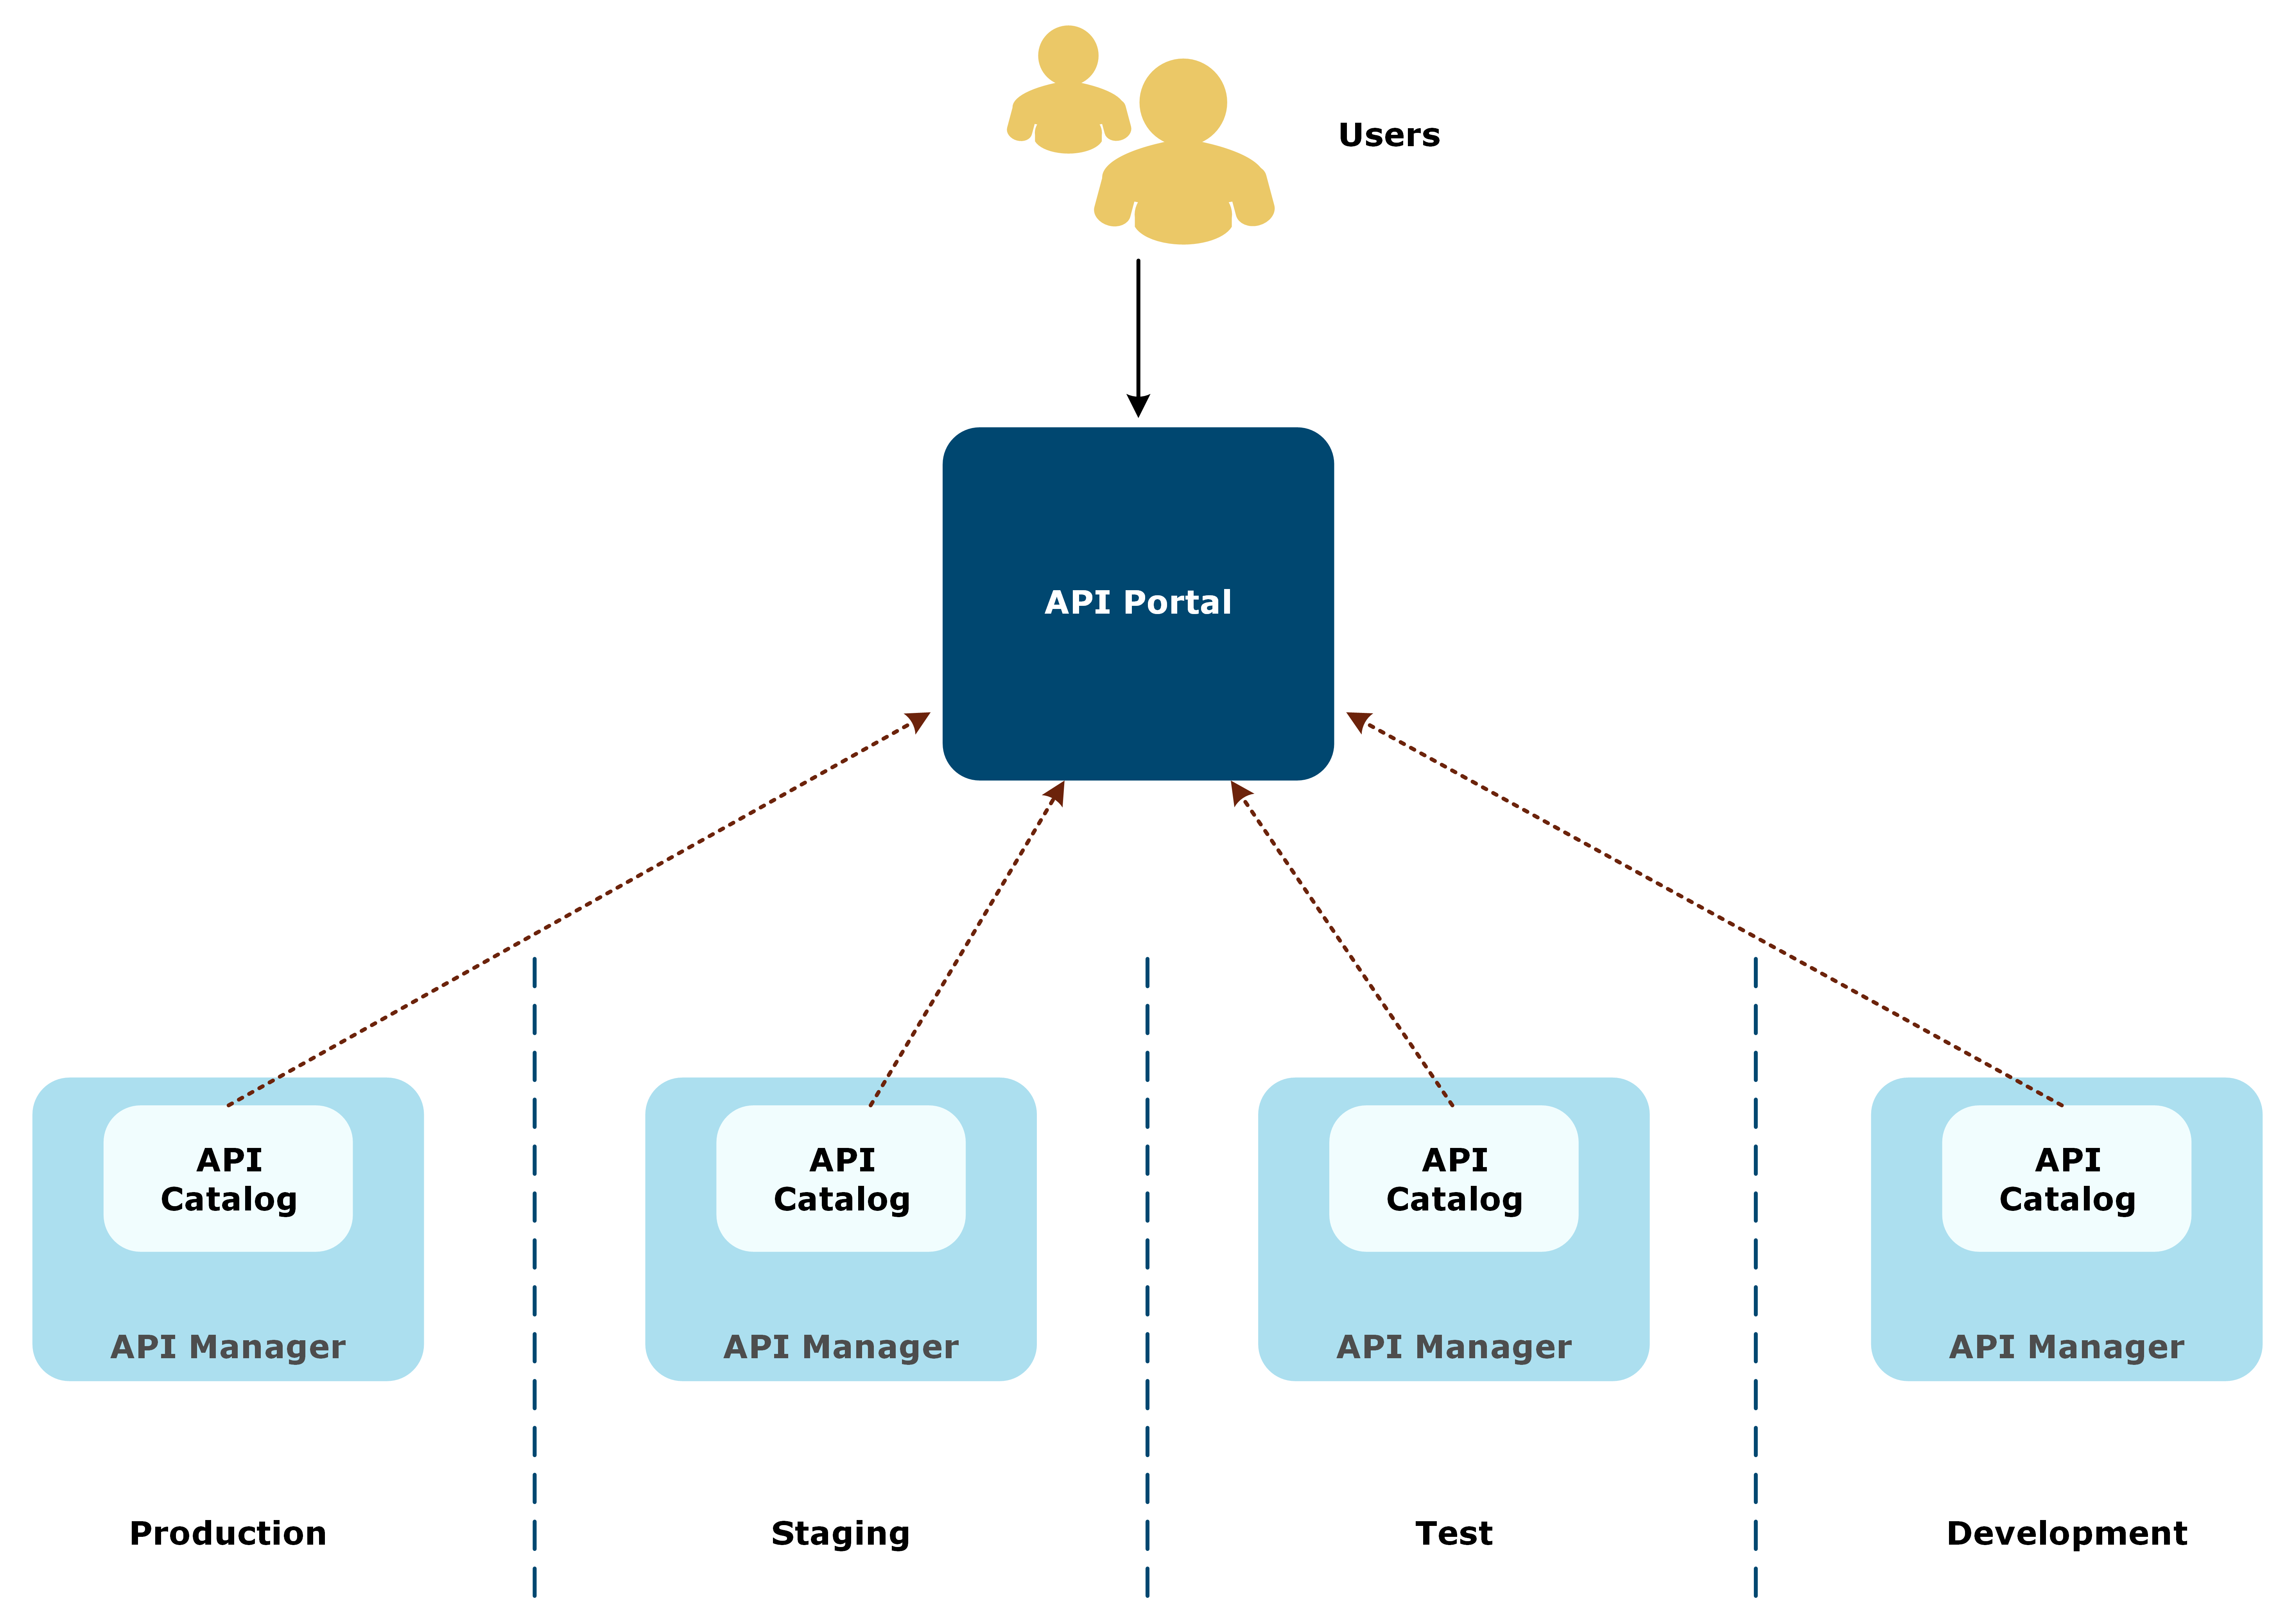 Illustration on how APIPortal centralizes APIs from multiple environments